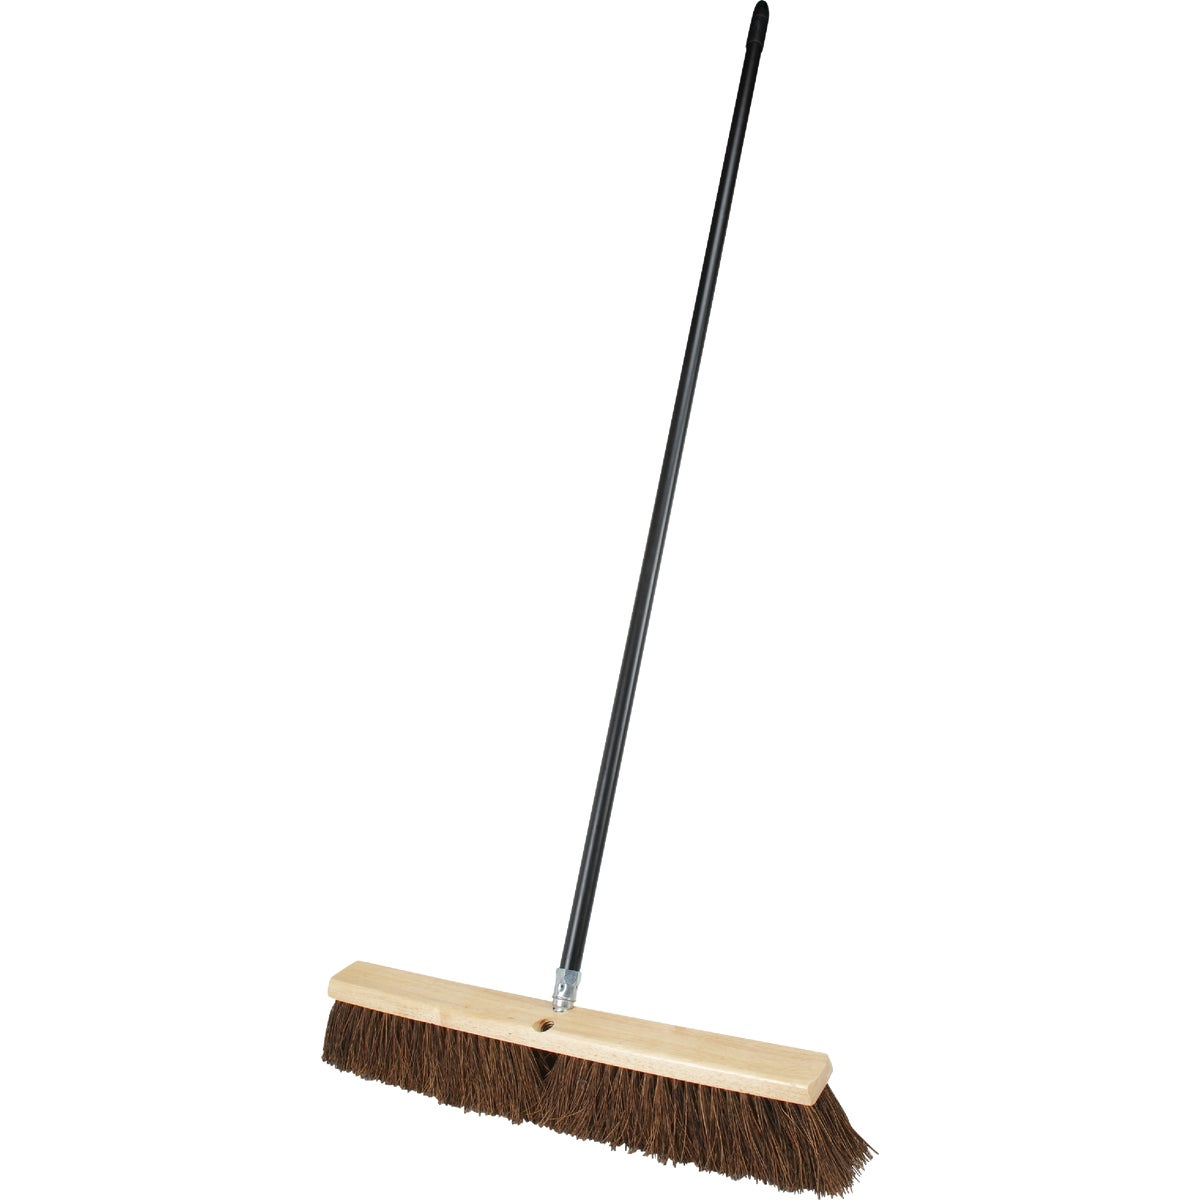 "24"" PALMYRA PUSH BROOM - DI89521 by D Q B Ind"